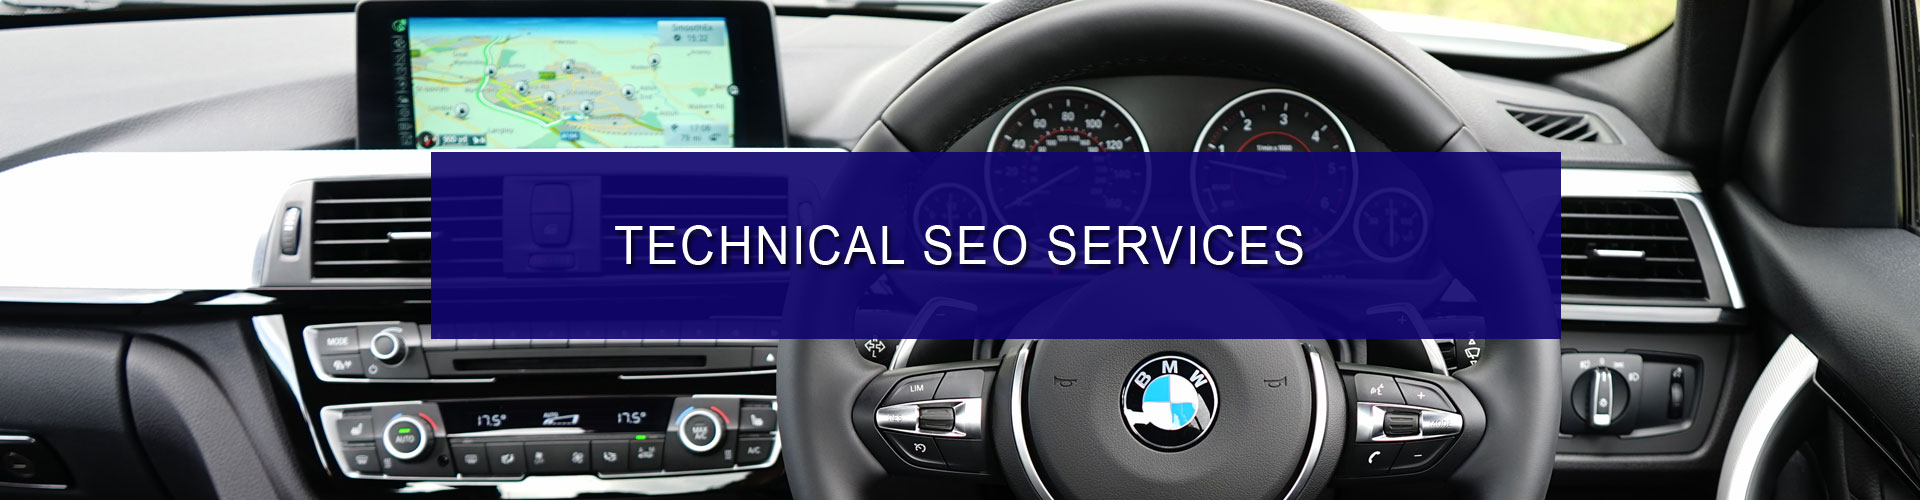 Technical-SEO-Services